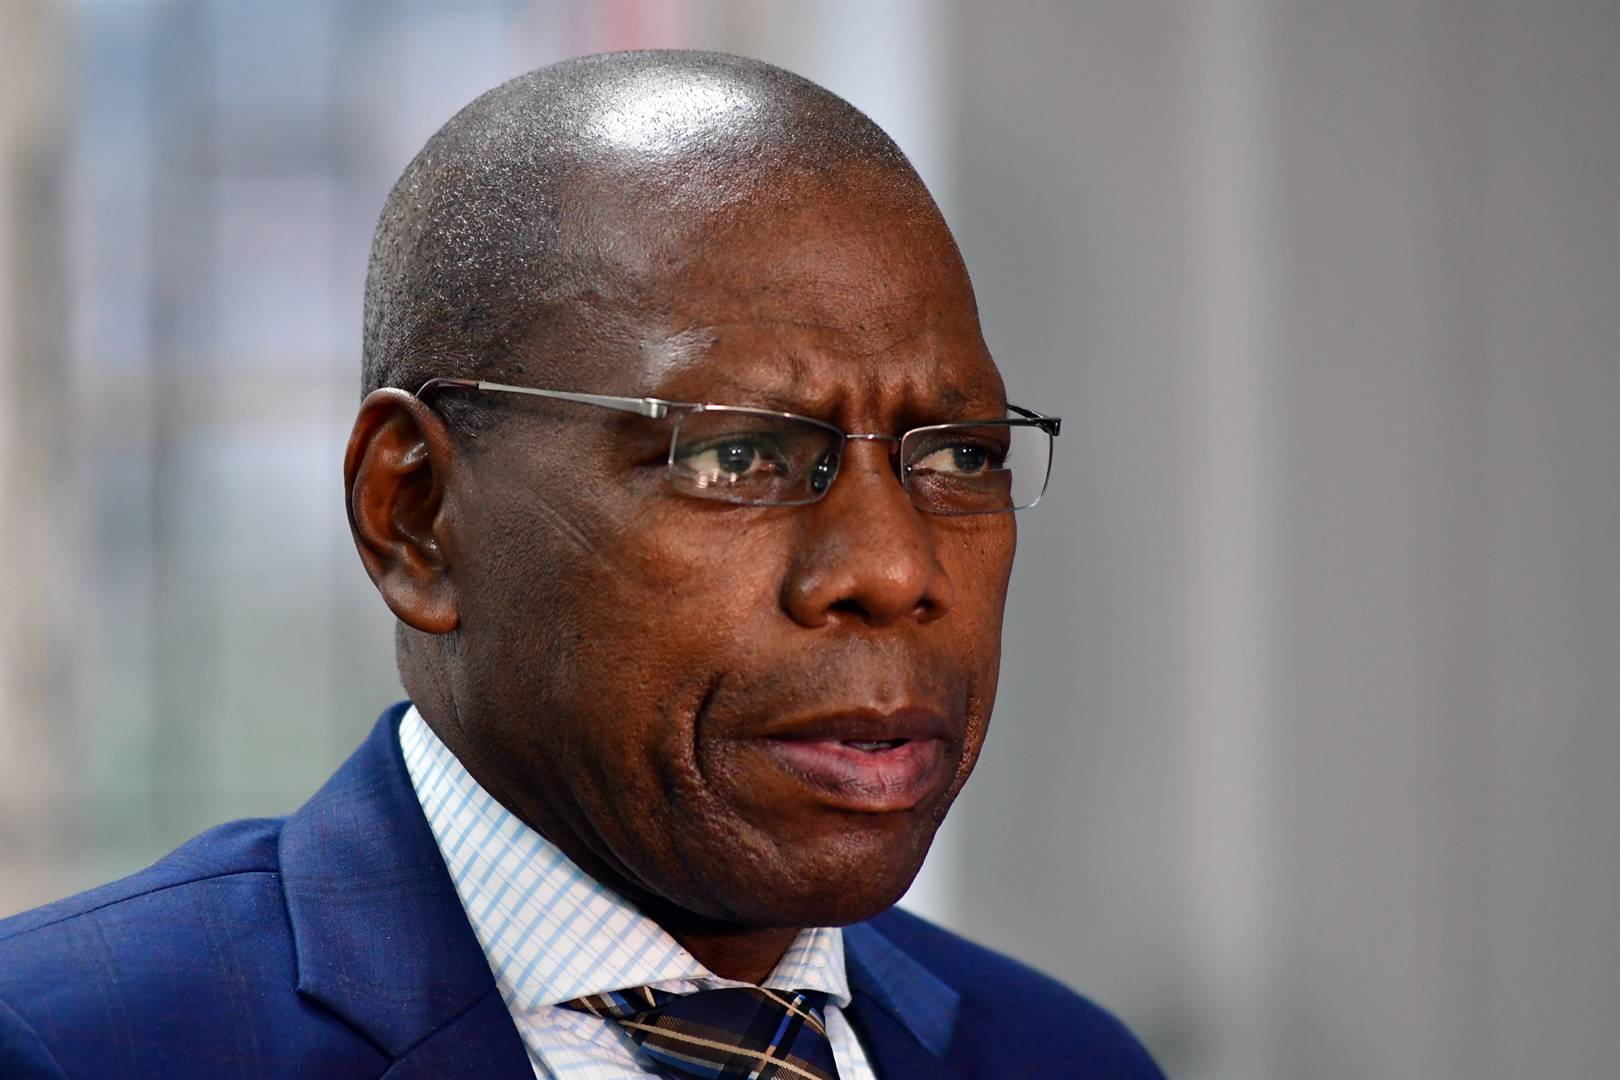 South Africa Minister Placed On Forced Leave Over Graft Claims